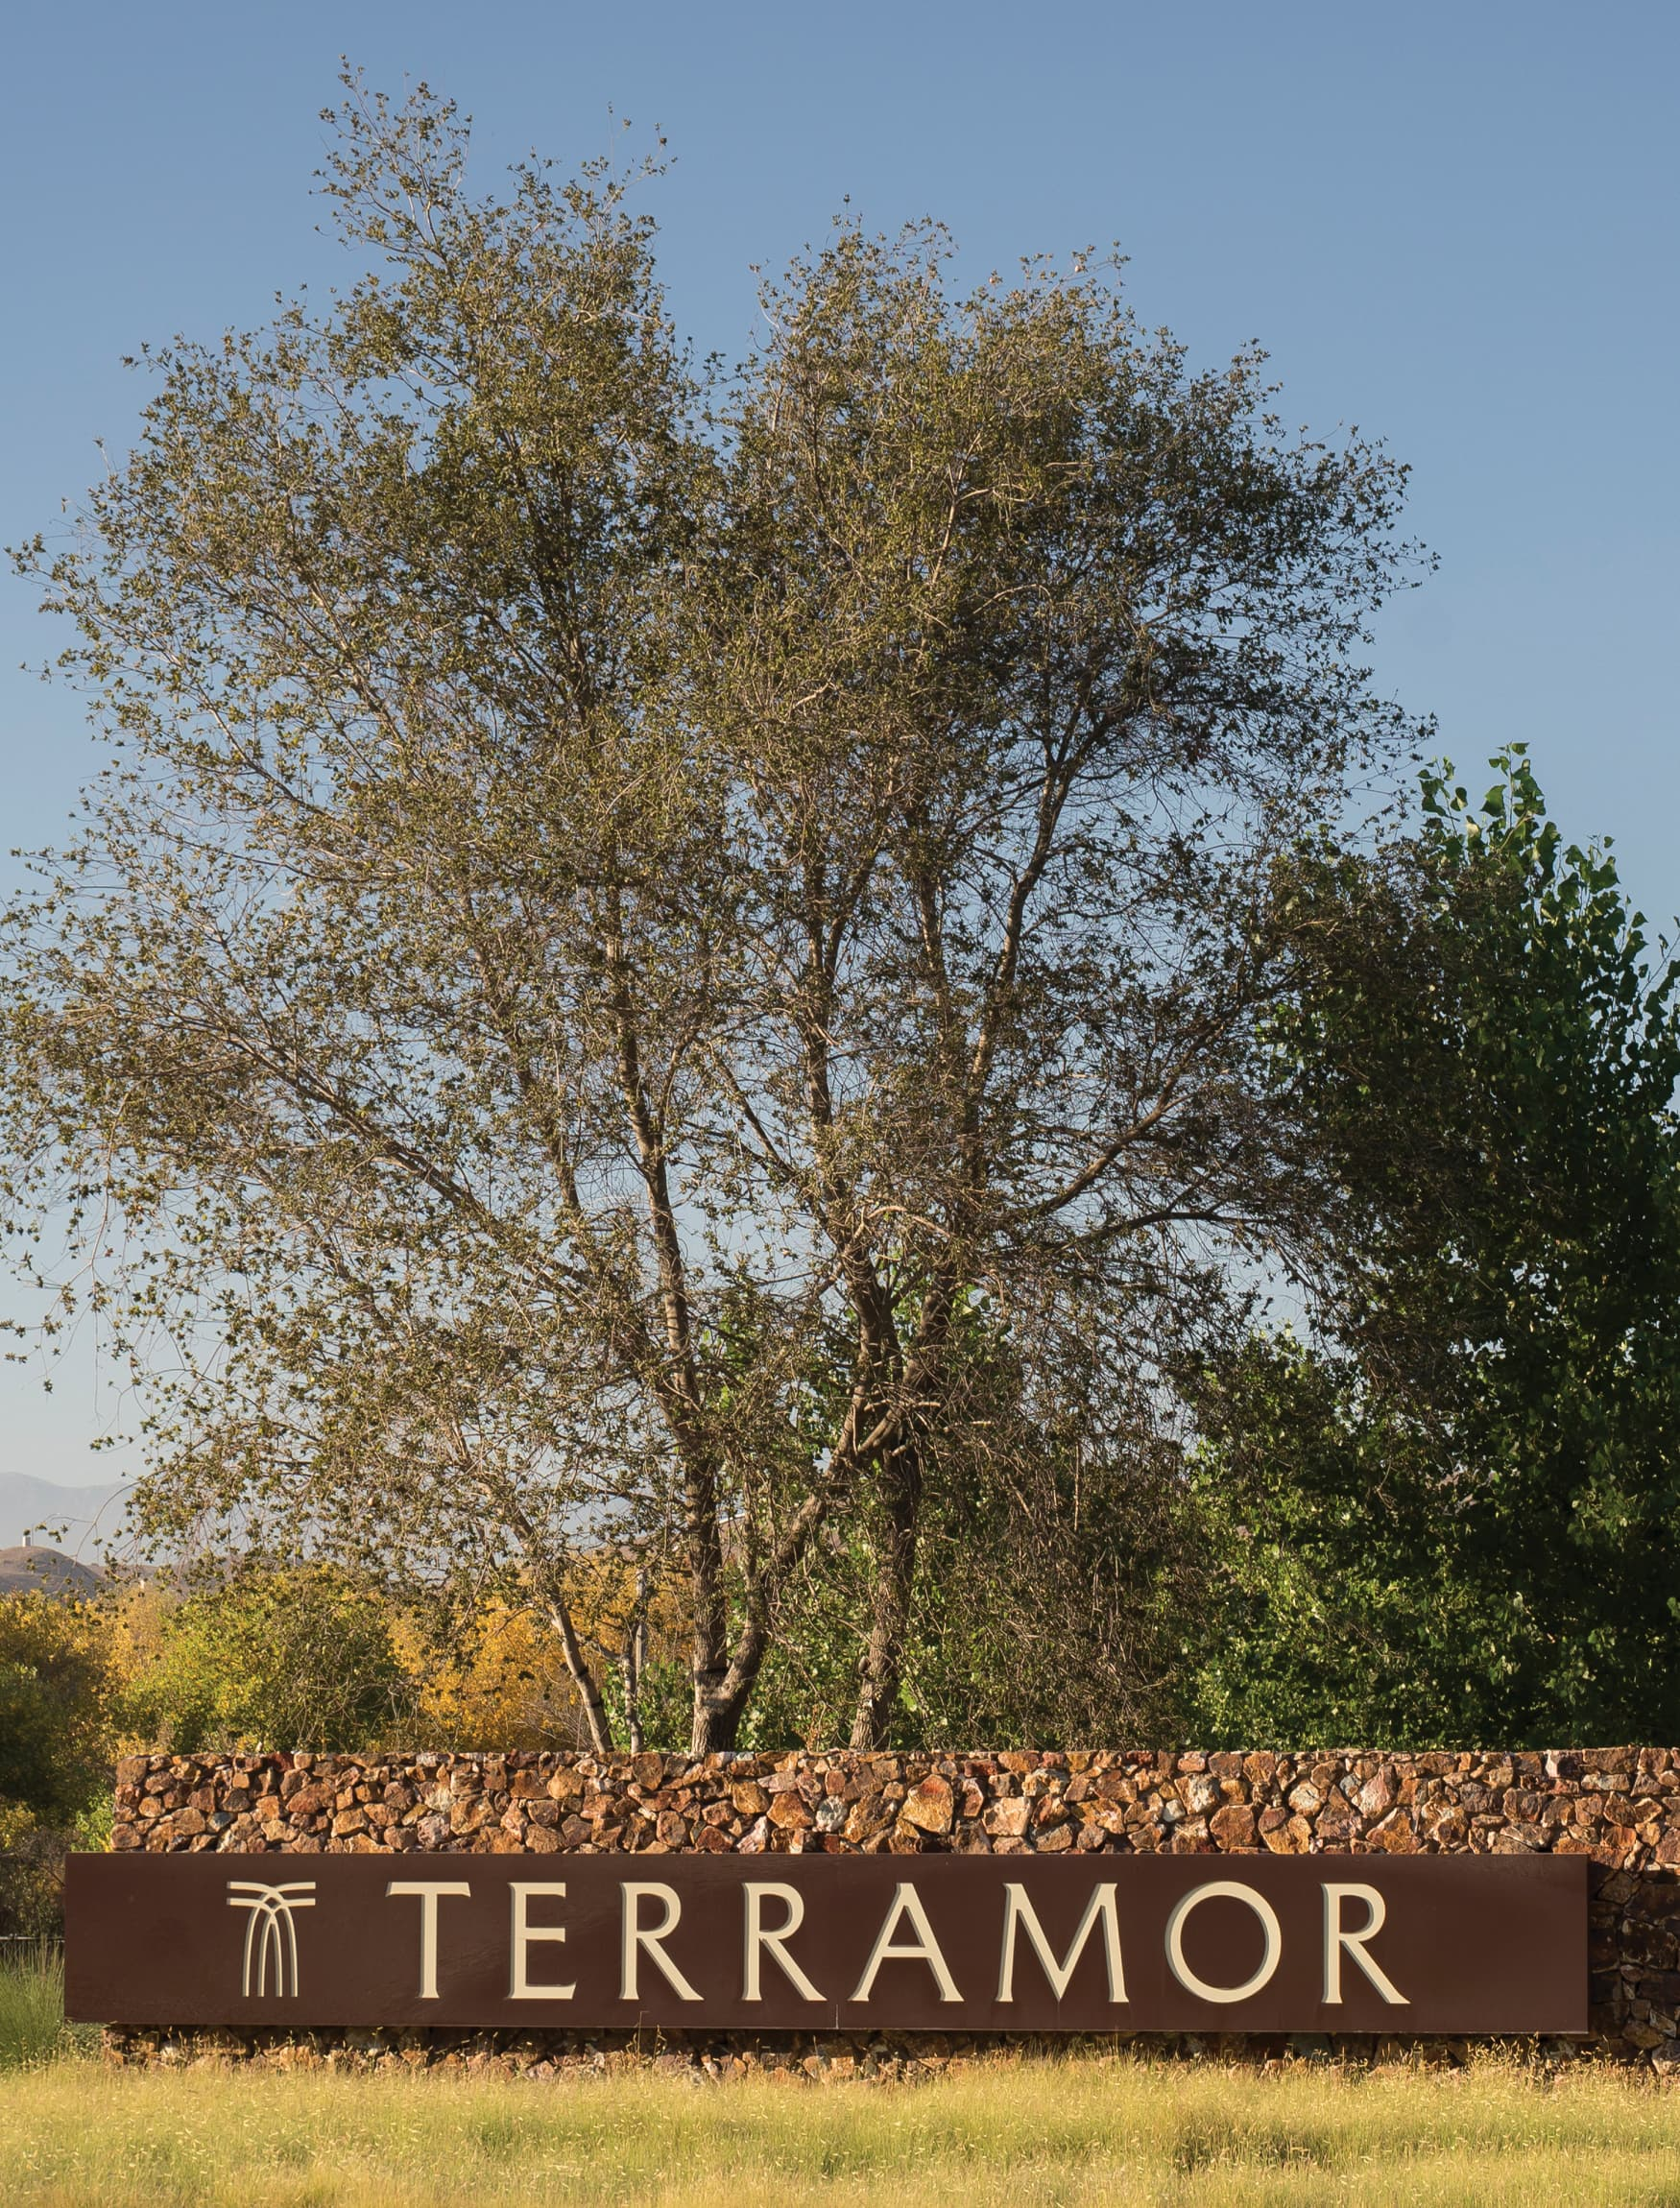 Terramor, a residential community in Corona, California. RSM Design. Stacked Stone Landscape Wall with Project Identity. Residential Placemaking Gateway.